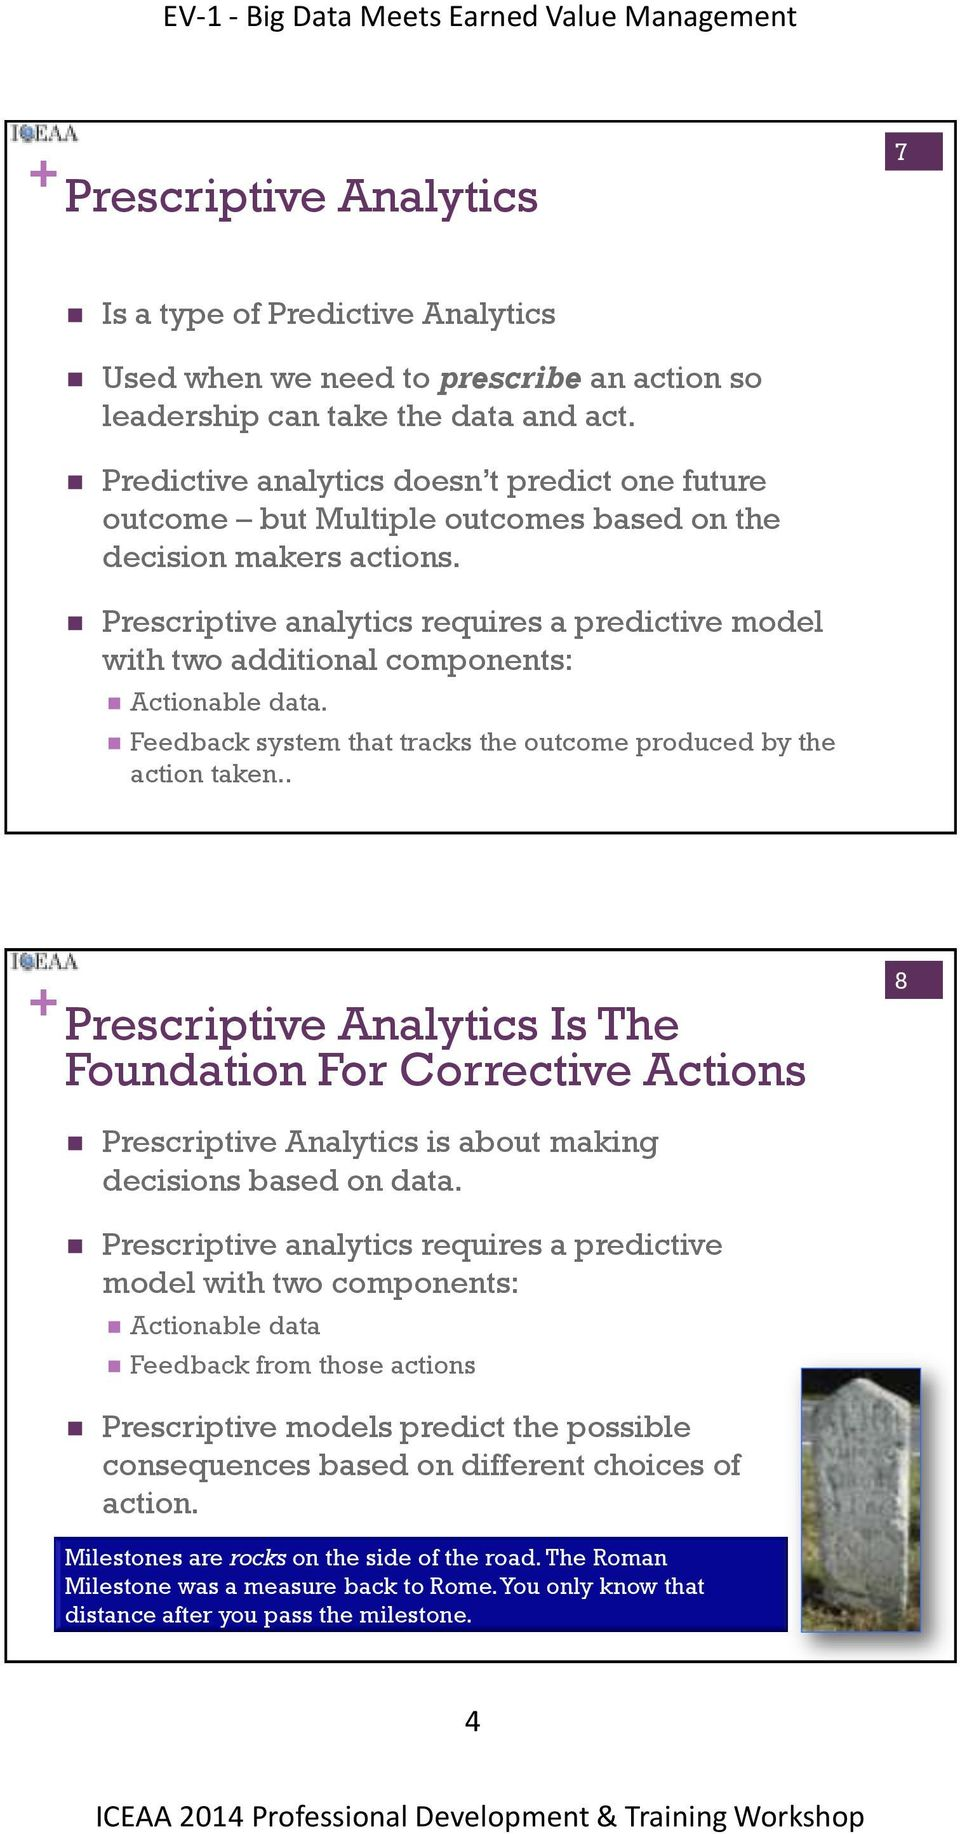 Prescriptive analytics requires a predictive model with two additional components: Actionable data. Feedback system that tracks the outcome produced by the action taken.